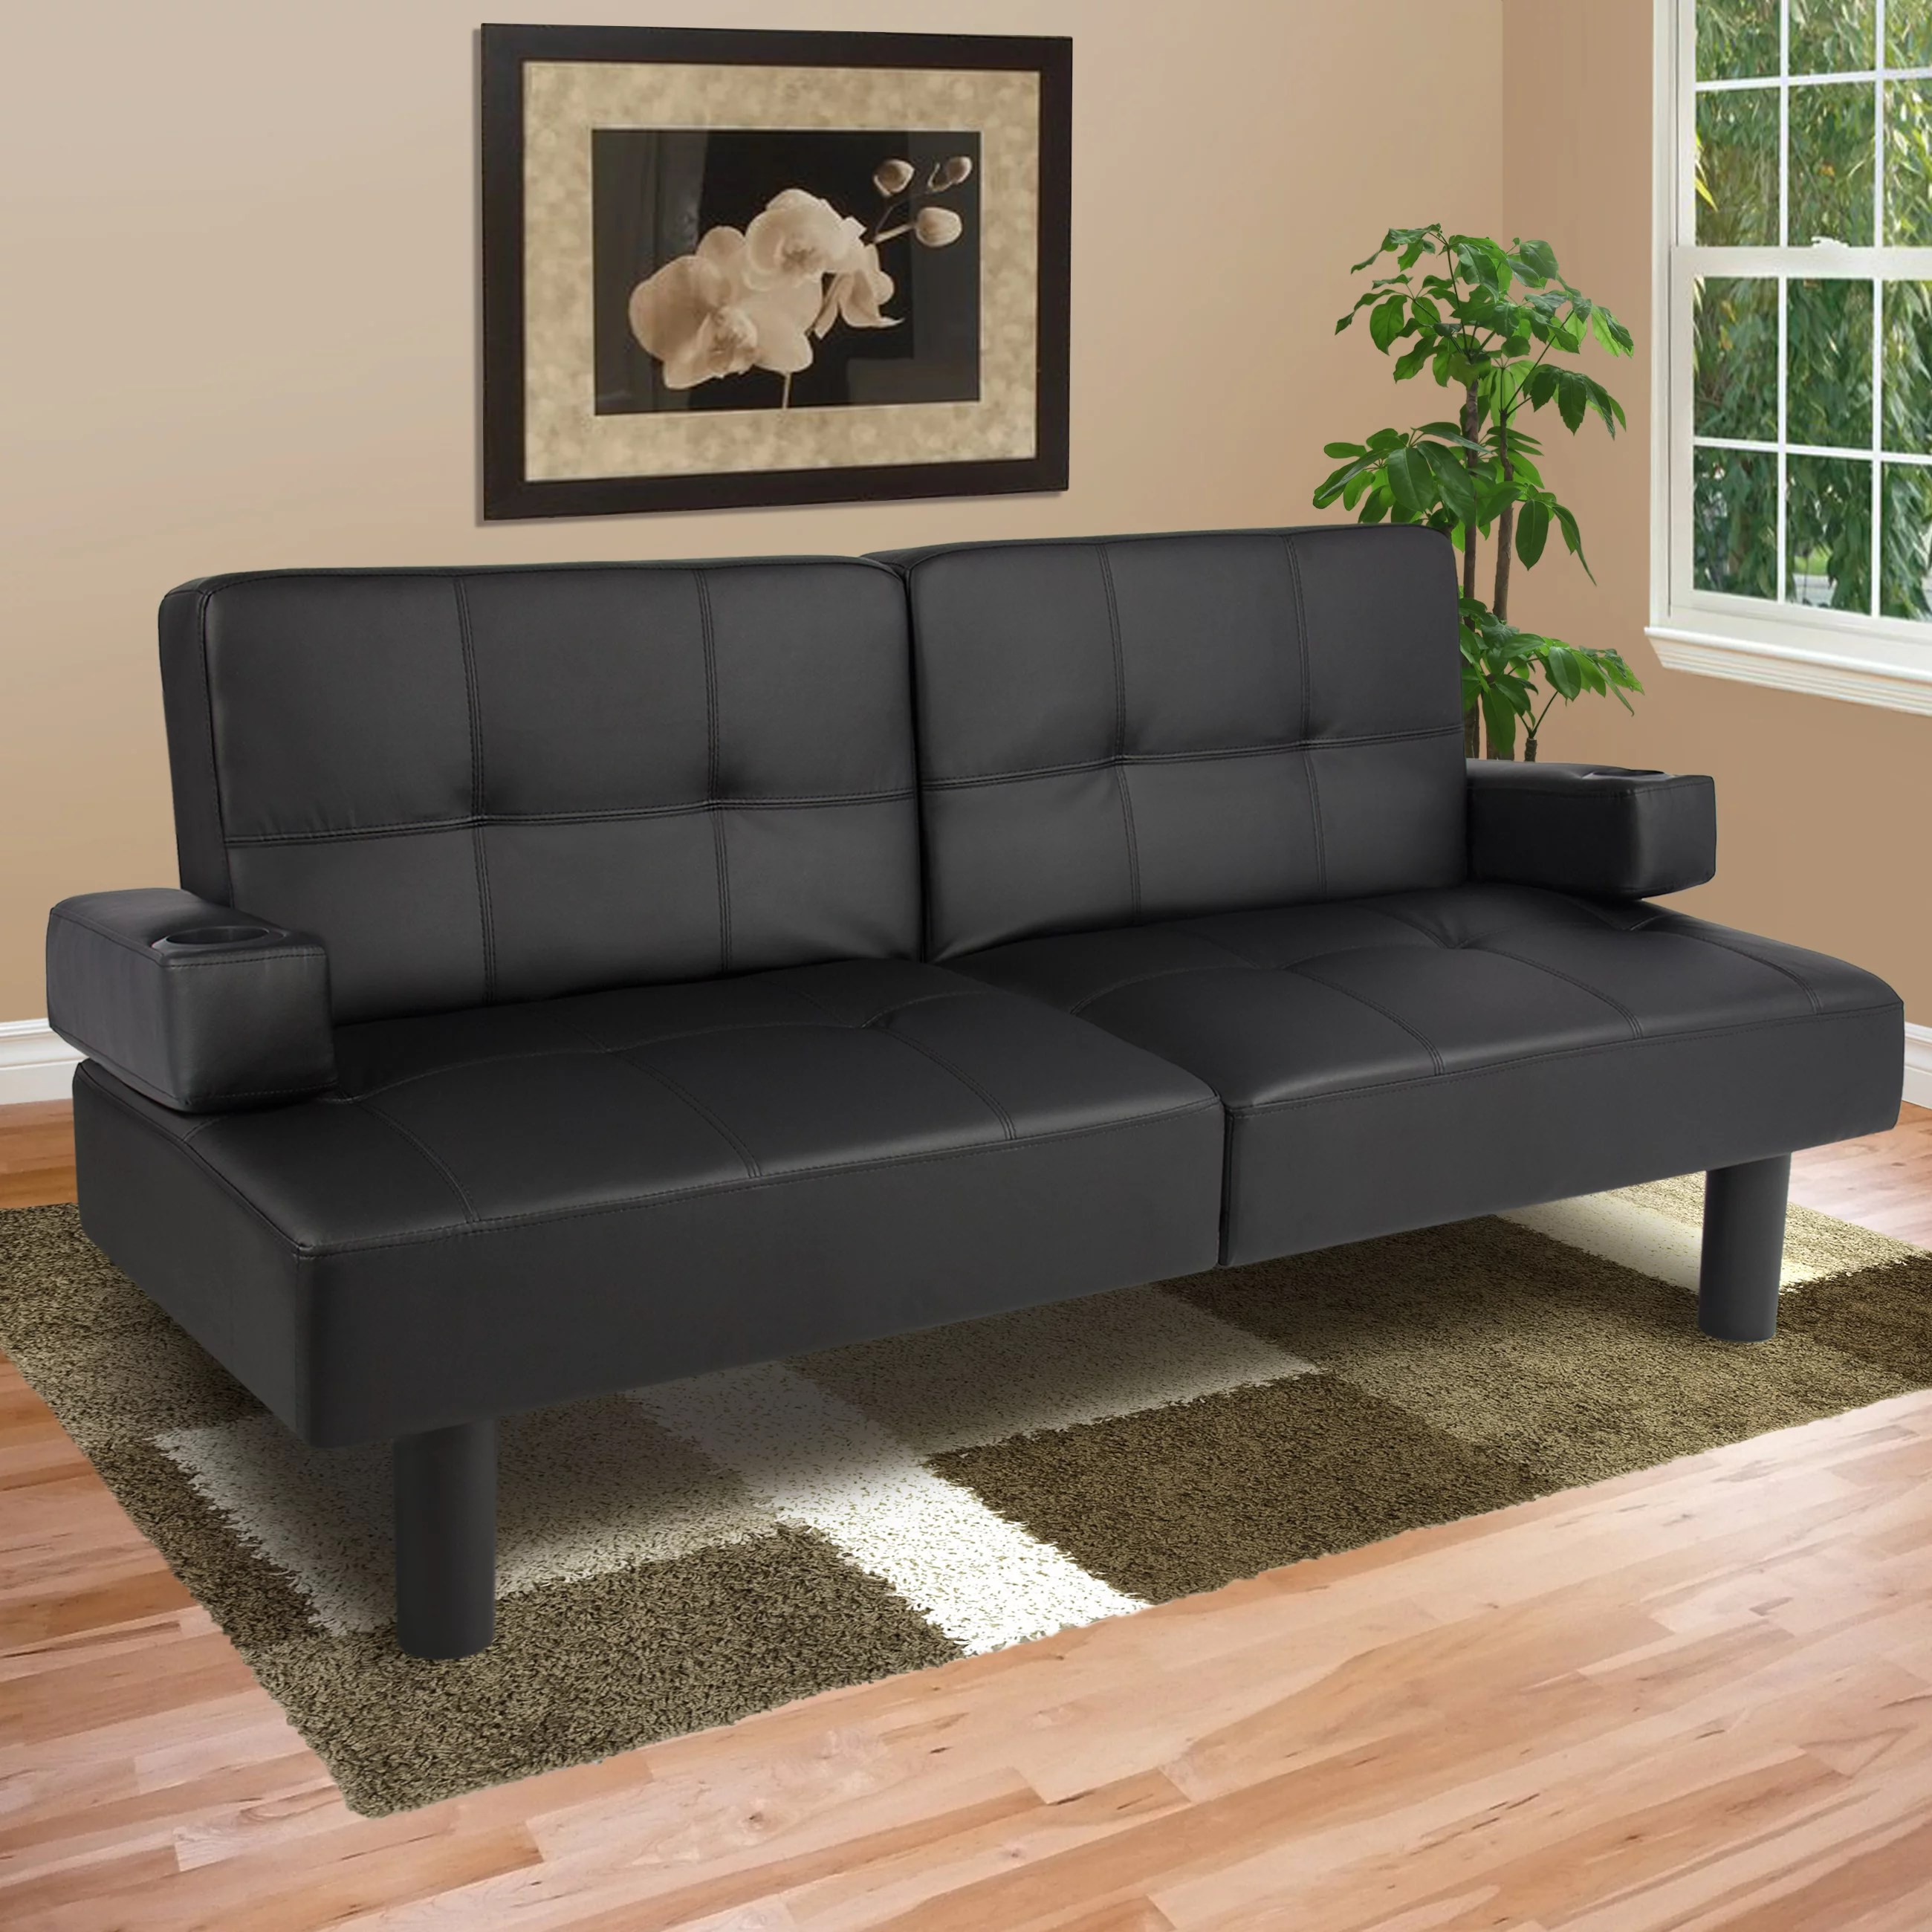 best choice products modern faux leather fold down convertible futon sofa bed w 2 cup holders black